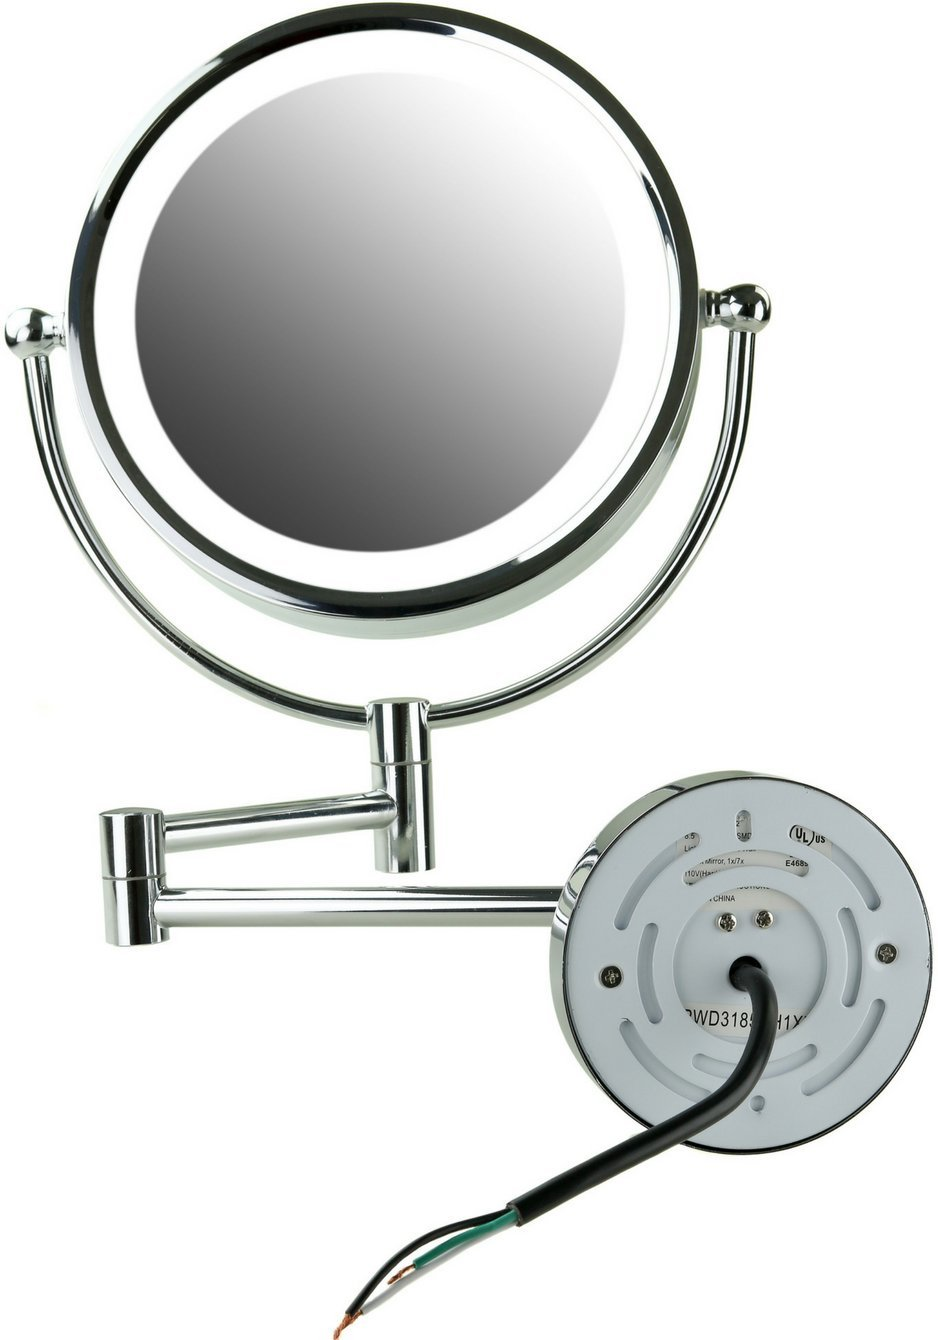 Ovente Lighted Wall Mount Mirror, 8.5 Inch, Dual-Sided 1x/7x Magnification, Hardwired Electrical Connection, Natural White LED Lights, 9-Watts, Polished Chrome (MPWD3185CH1X7X) by Ovente (Image #3)